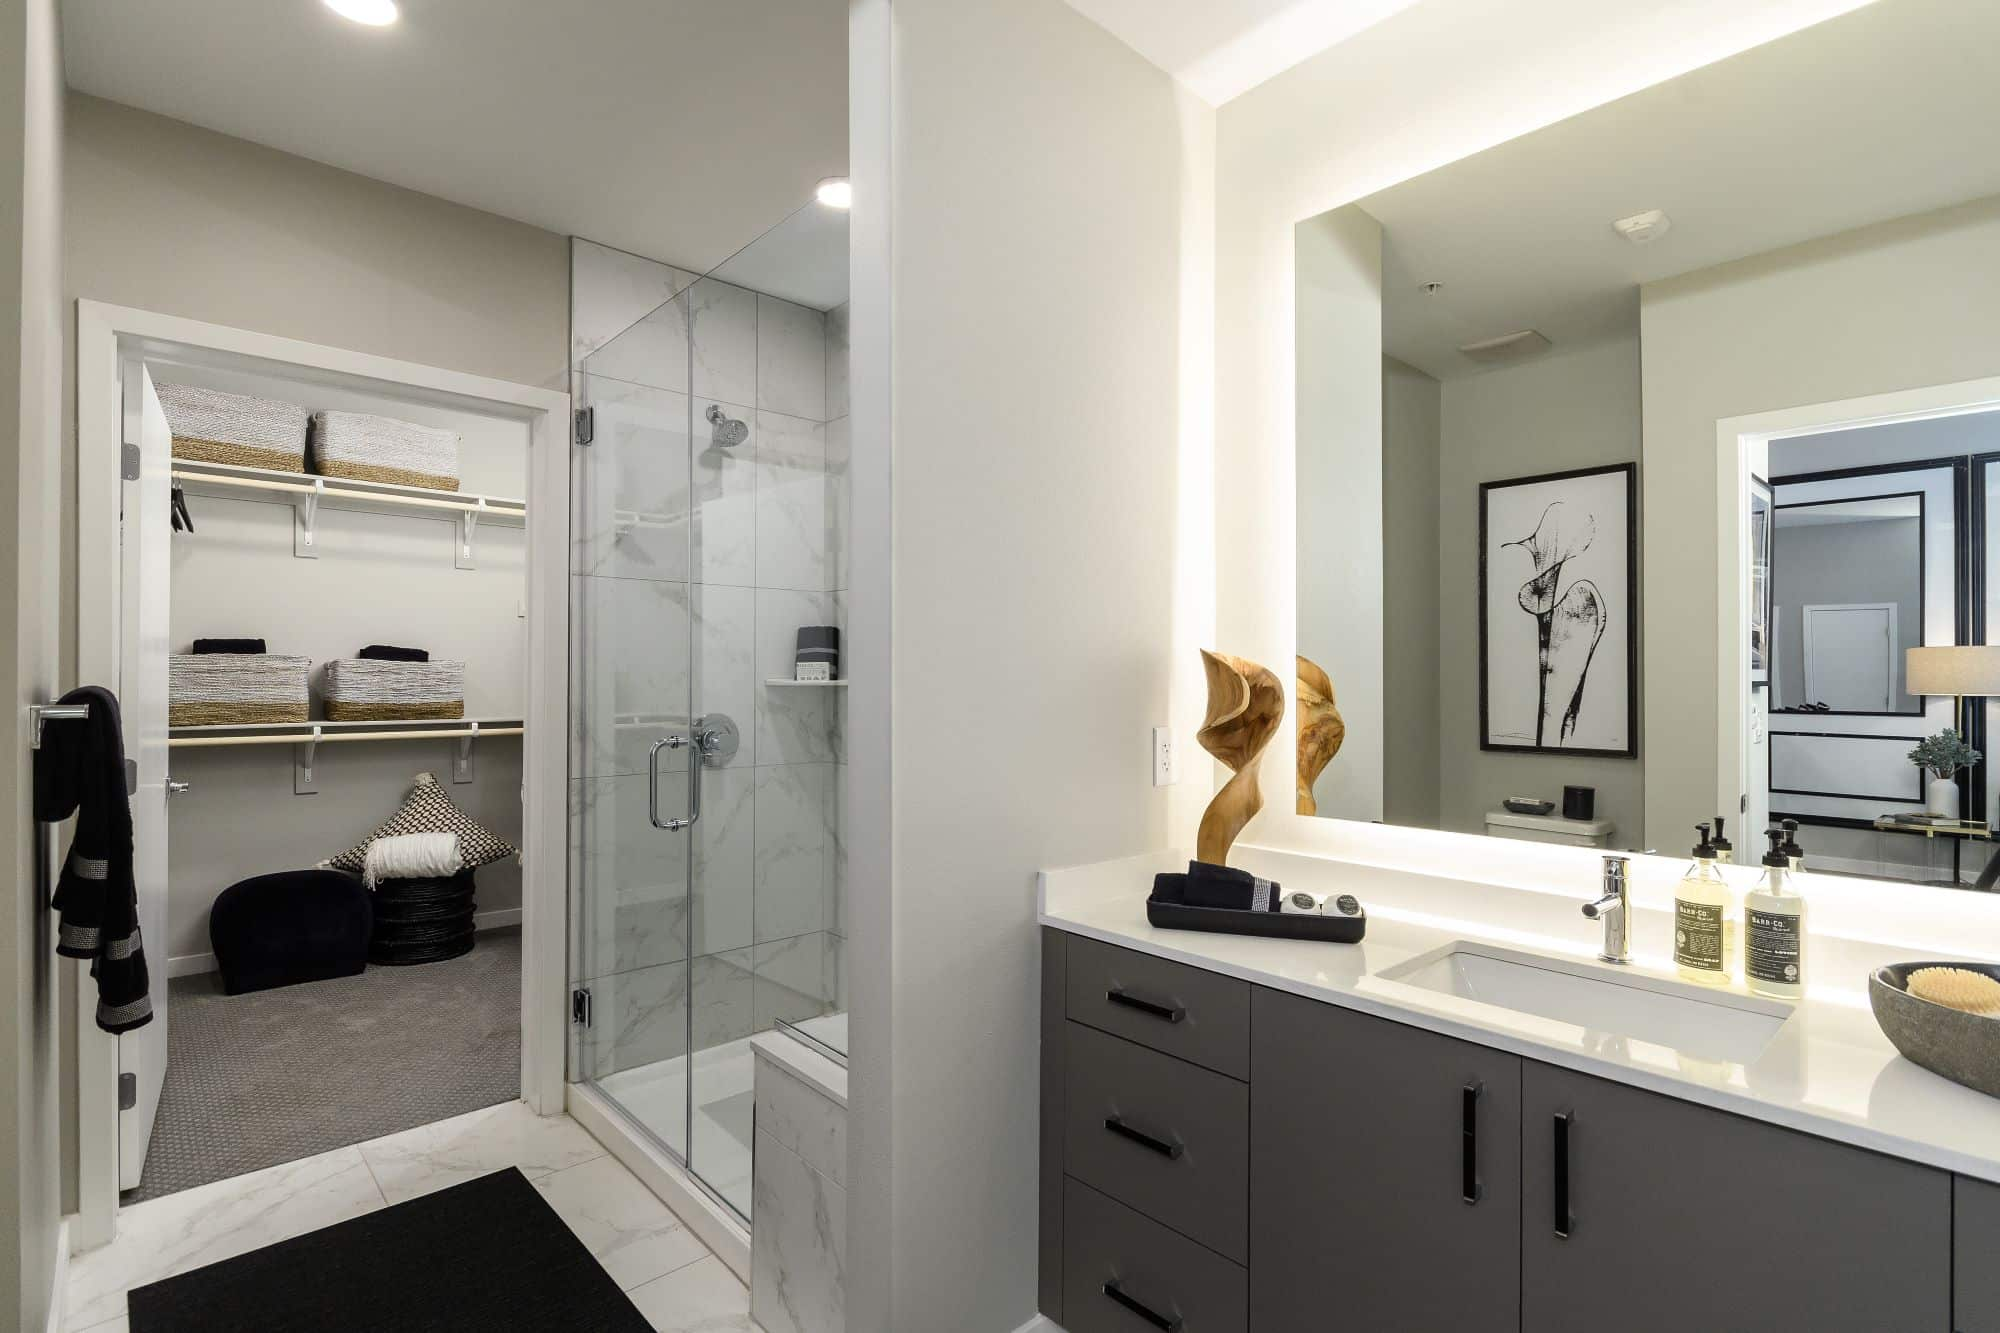 bathroom with a stand-up shower and spacious vanity at Auric Symphony Park apartments in Las Vegas